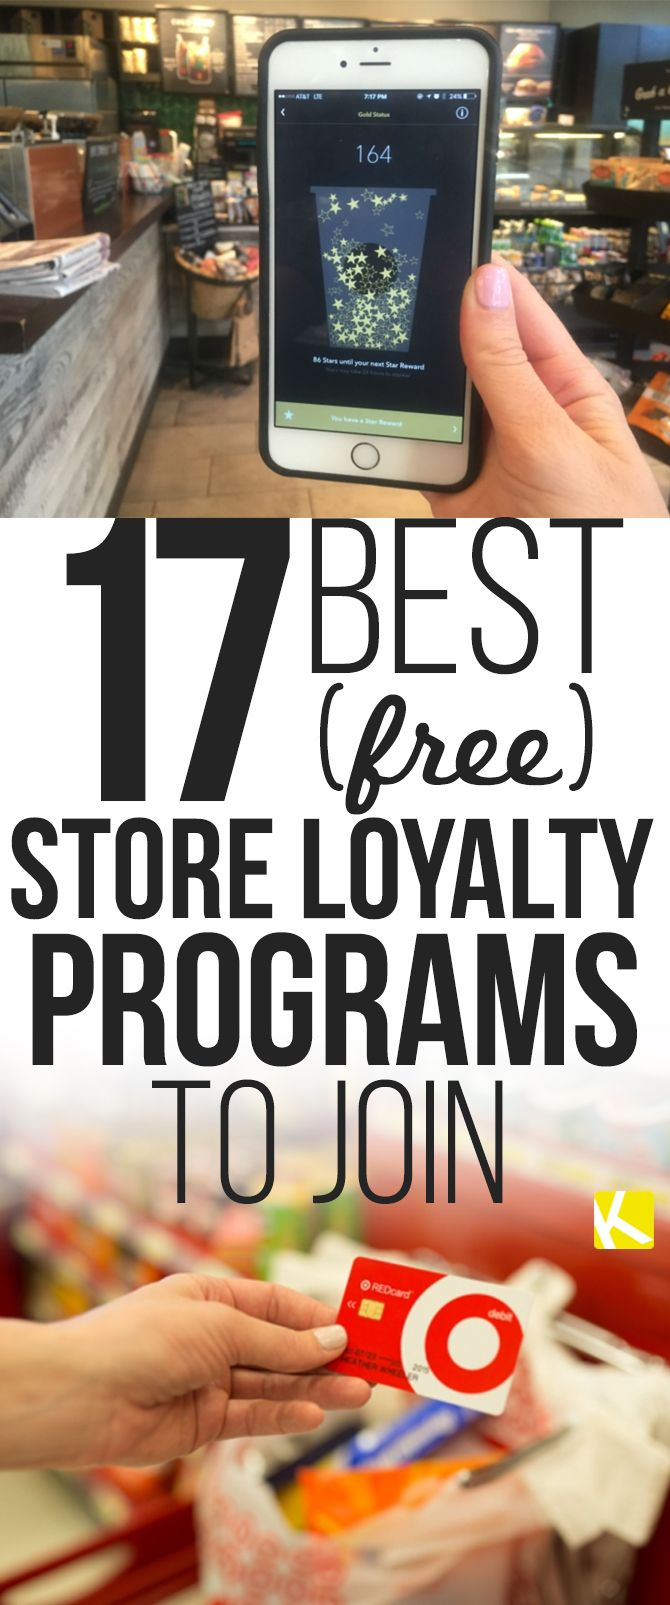 17 best free store loyalty programs to join